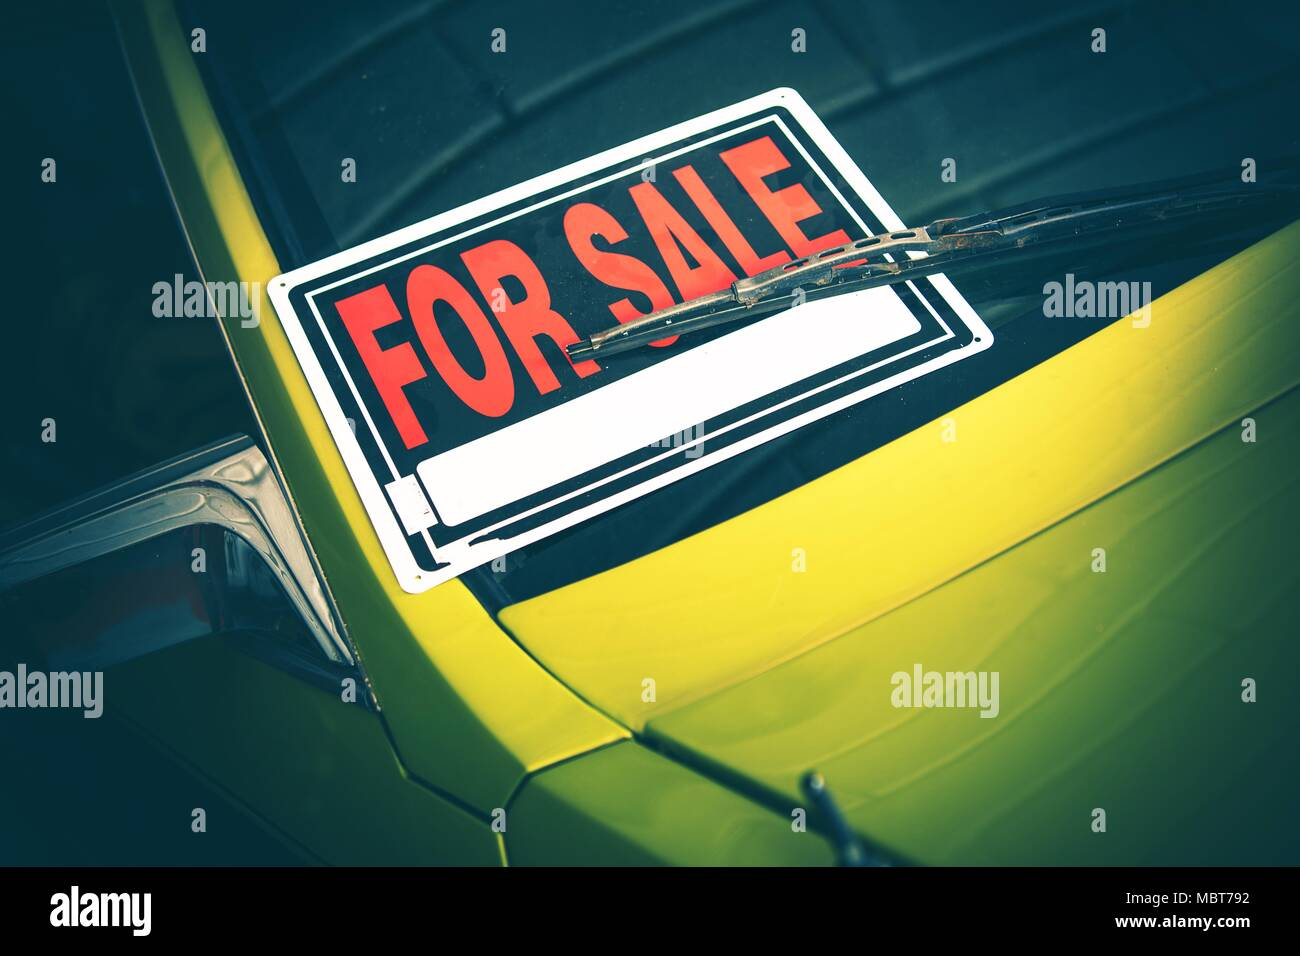 Car For Sale Sign Under Windshield Wiper. Closeup Photo. Vehicle Selling Theme. Stock Photo